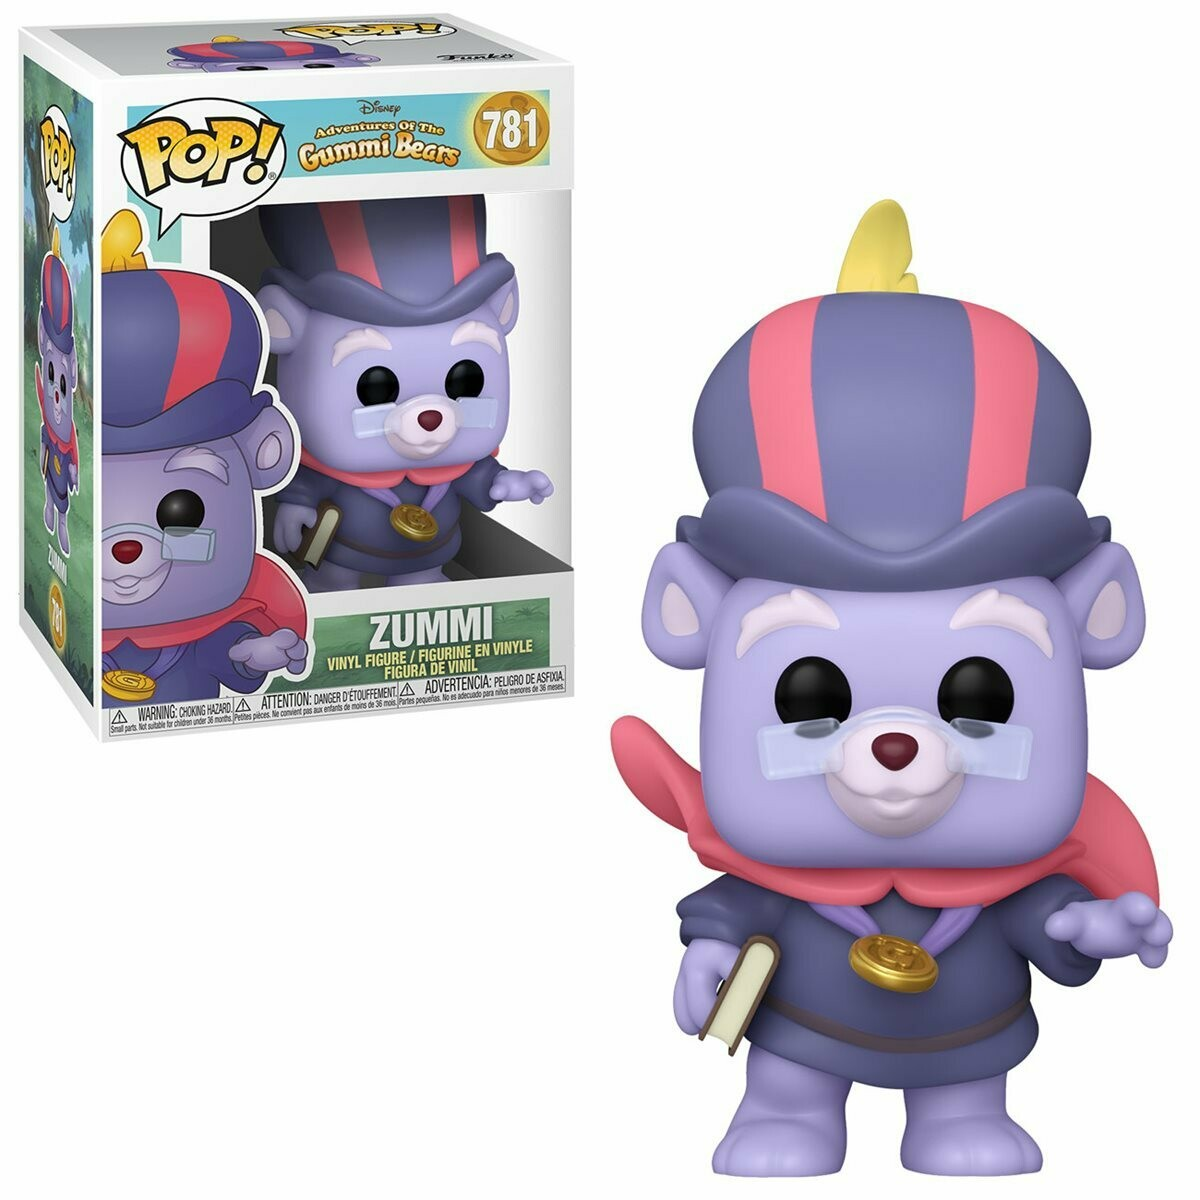 Funko Adventures of the Gummi Bears Zummi Pop! Vinyl Figure